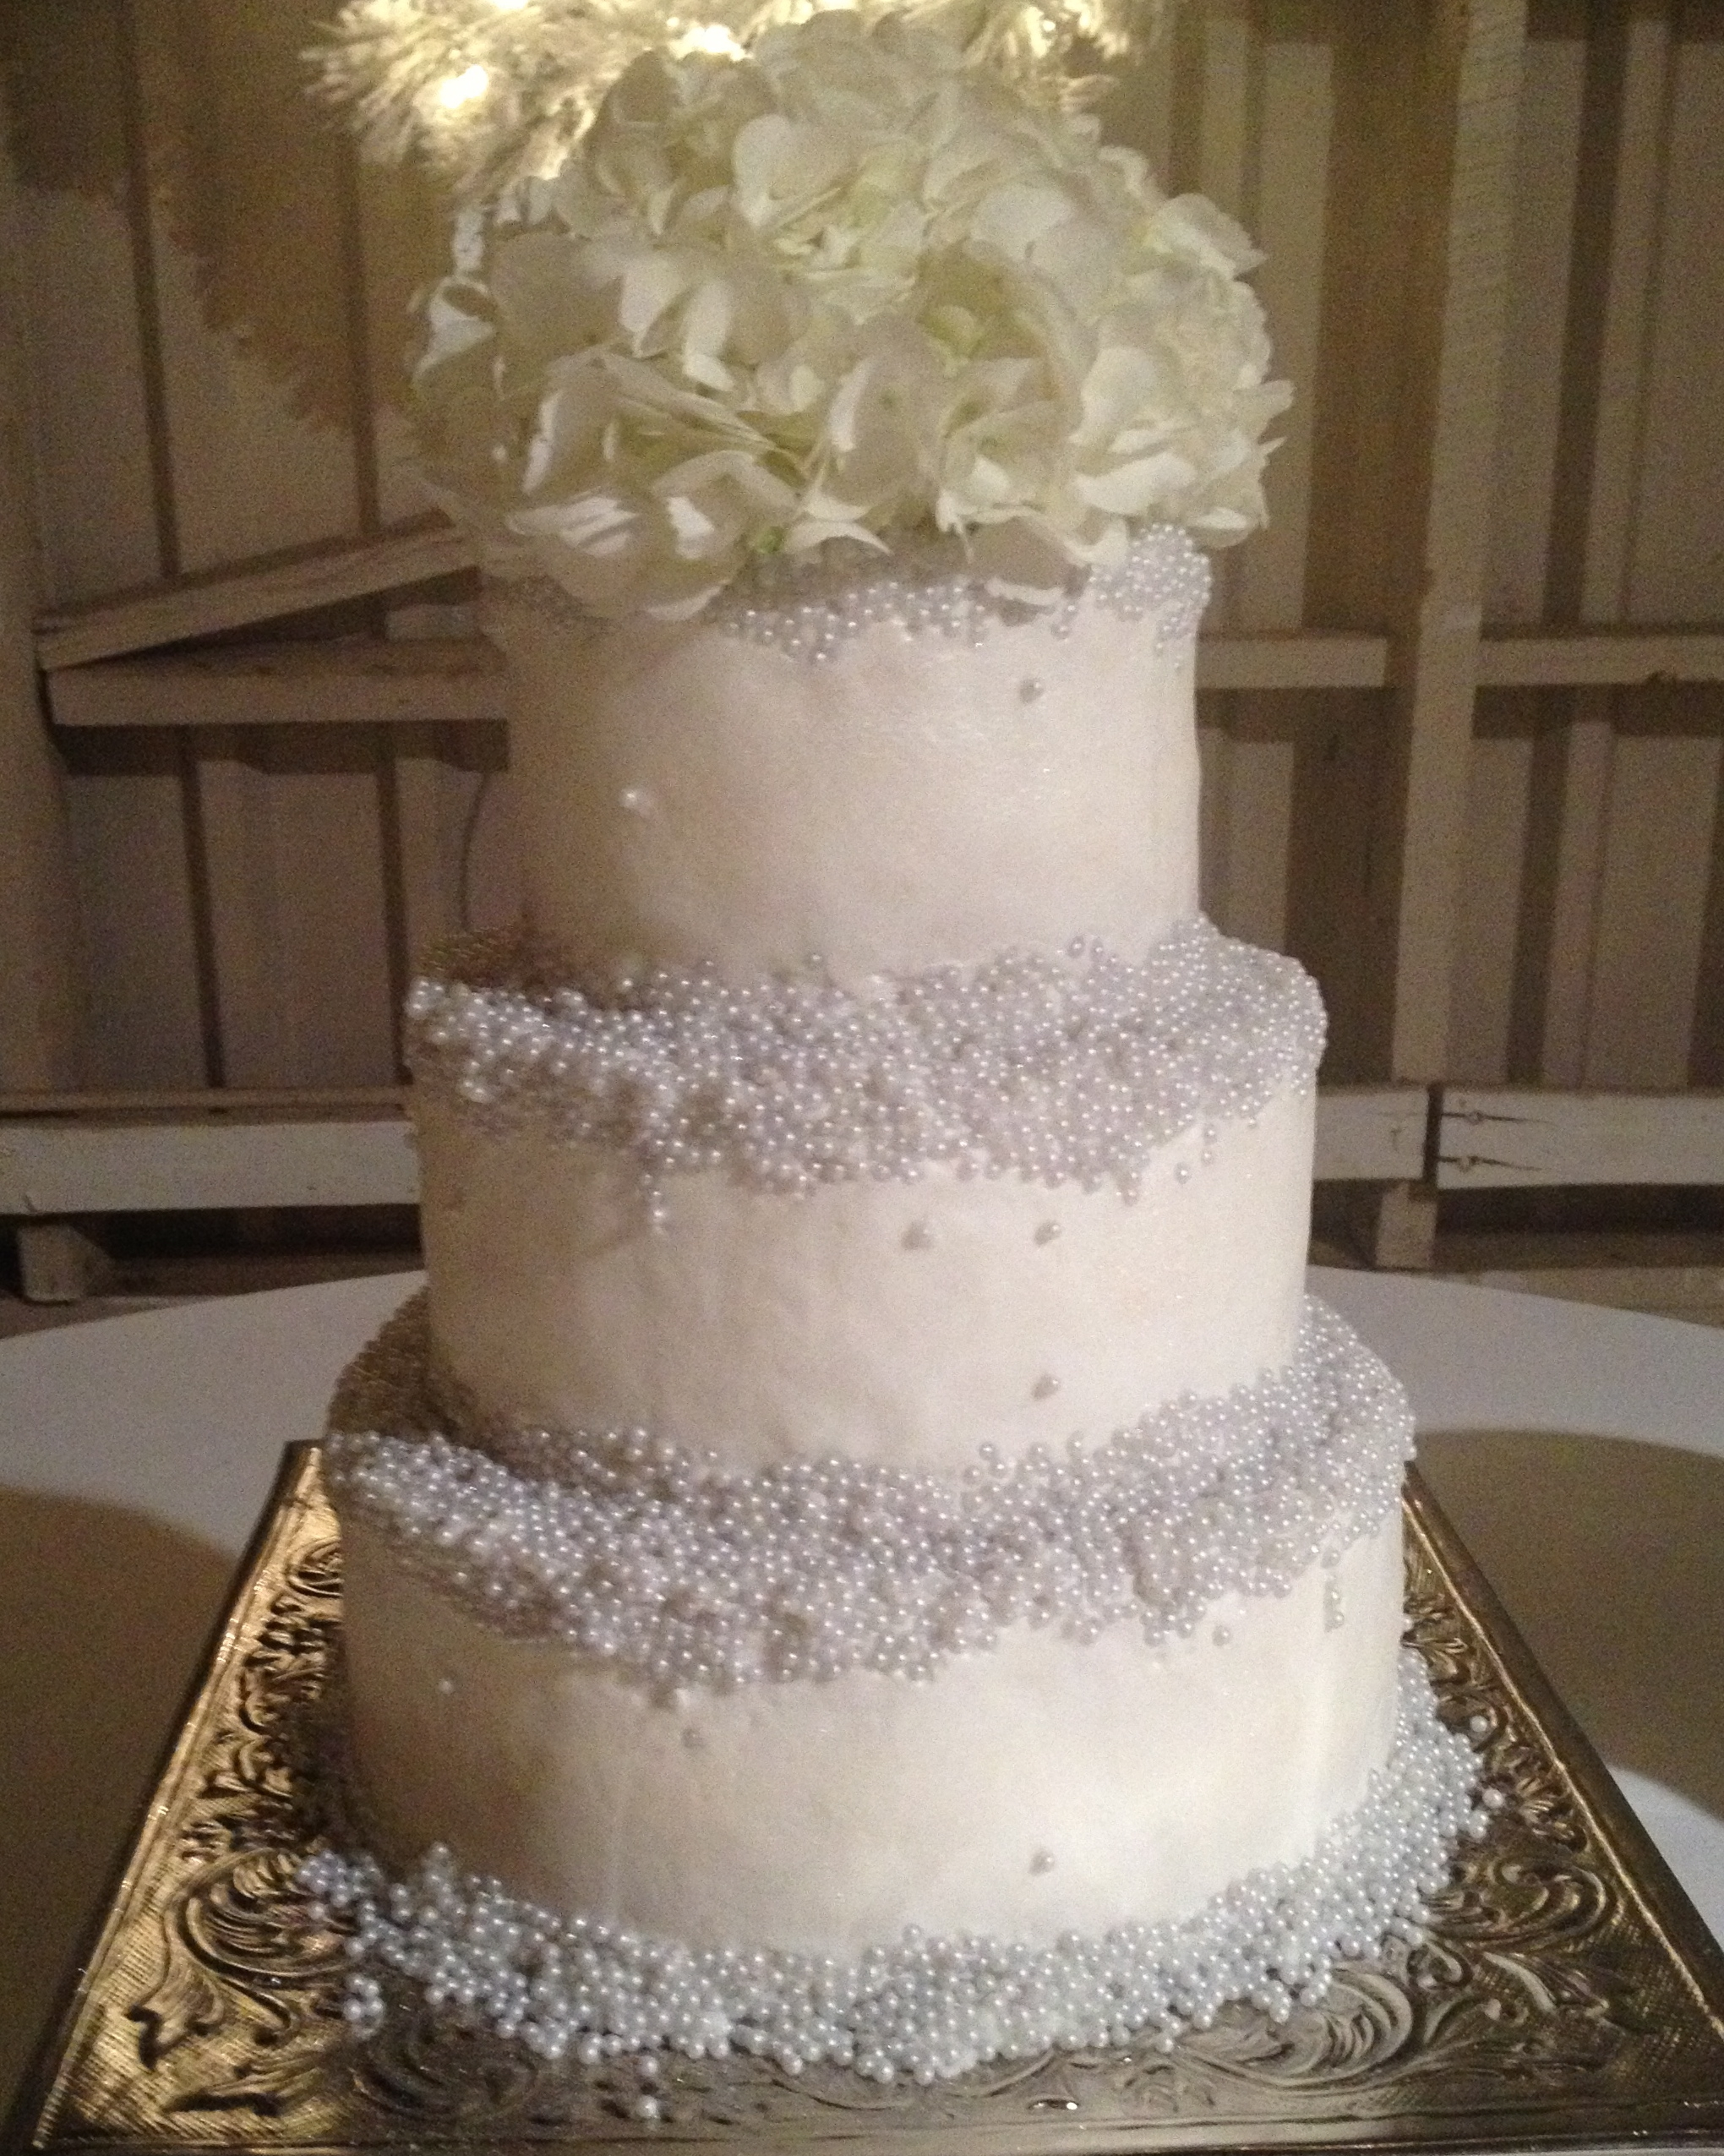 Round, Pearl Encrusted Wedding Cake buttercream fostingsugar pearl accentshydrangeas on top